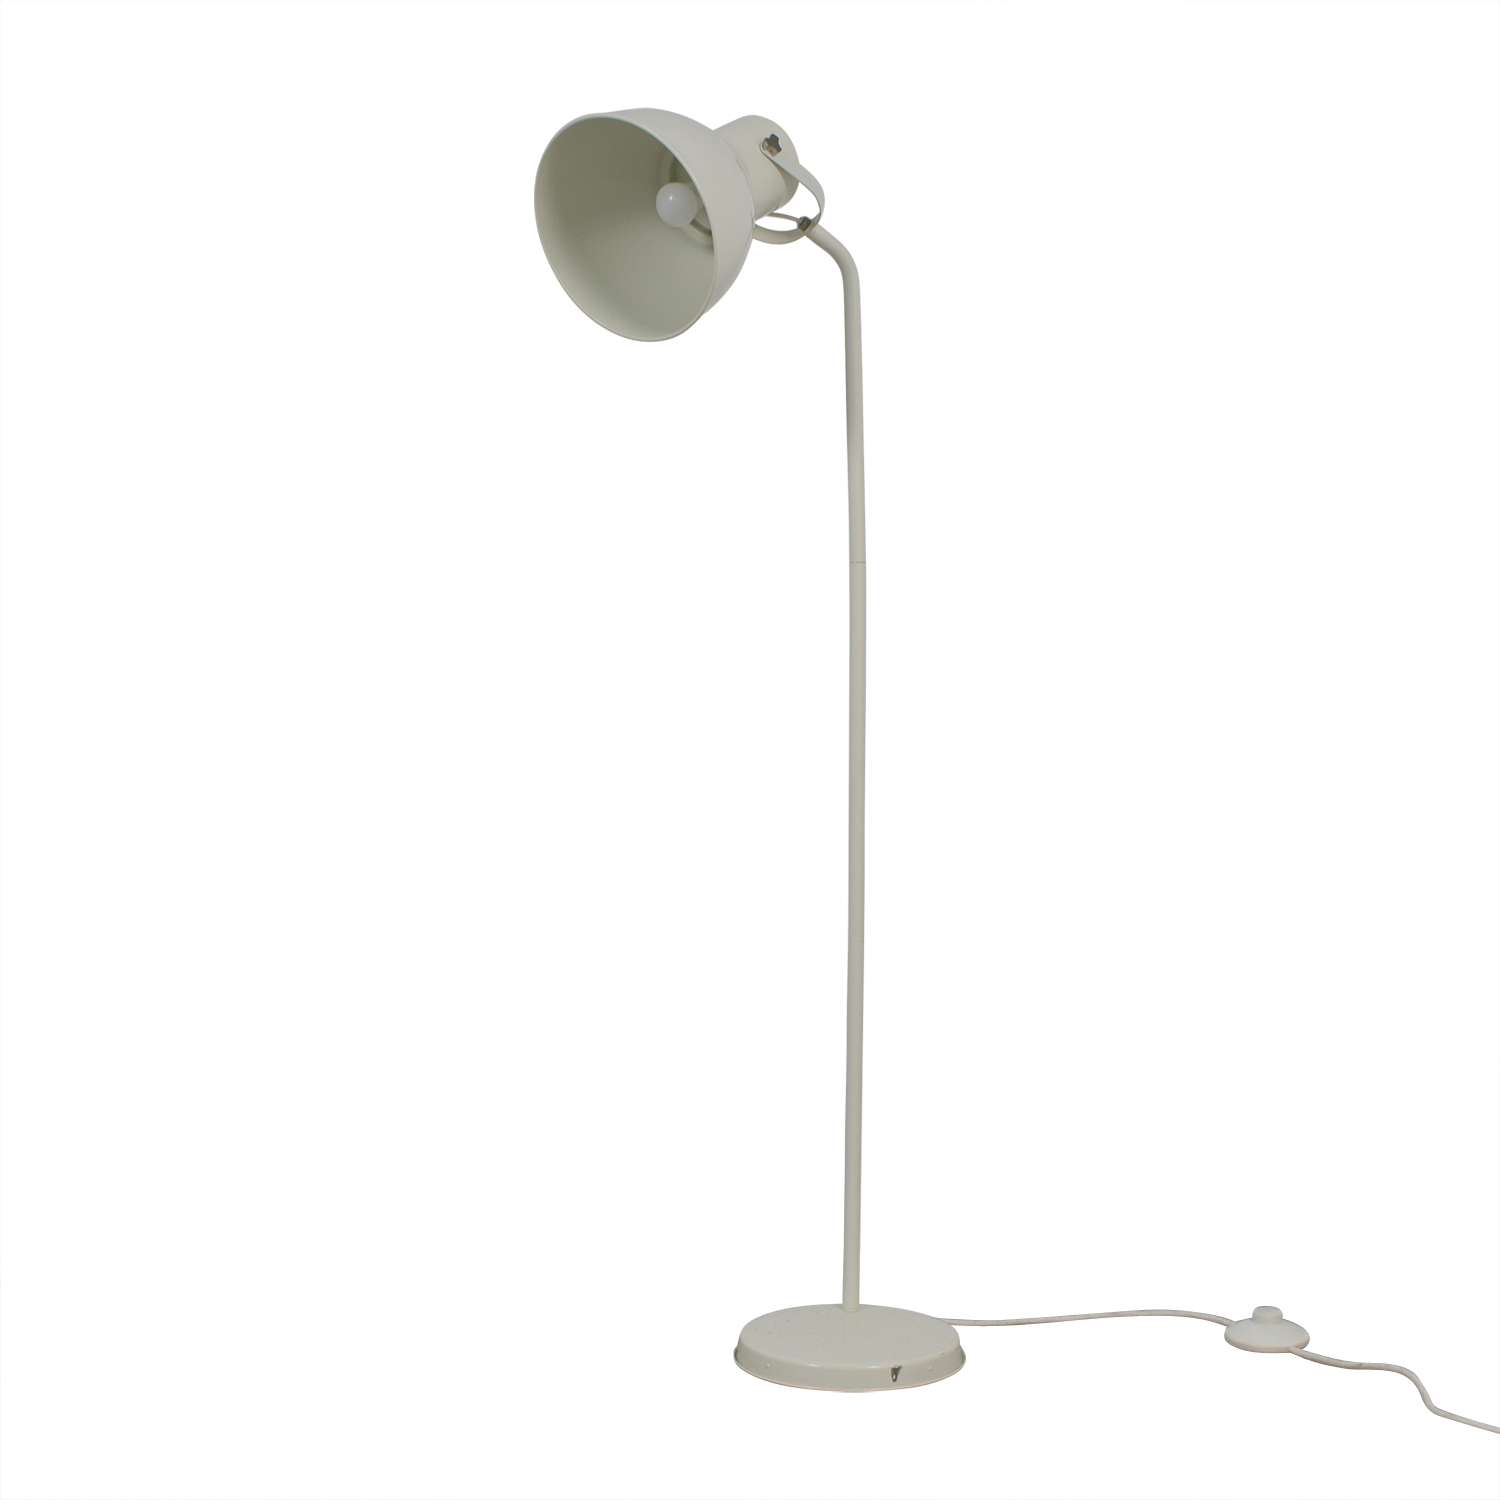 IKEA Hektar Floor Lamp / Lamps